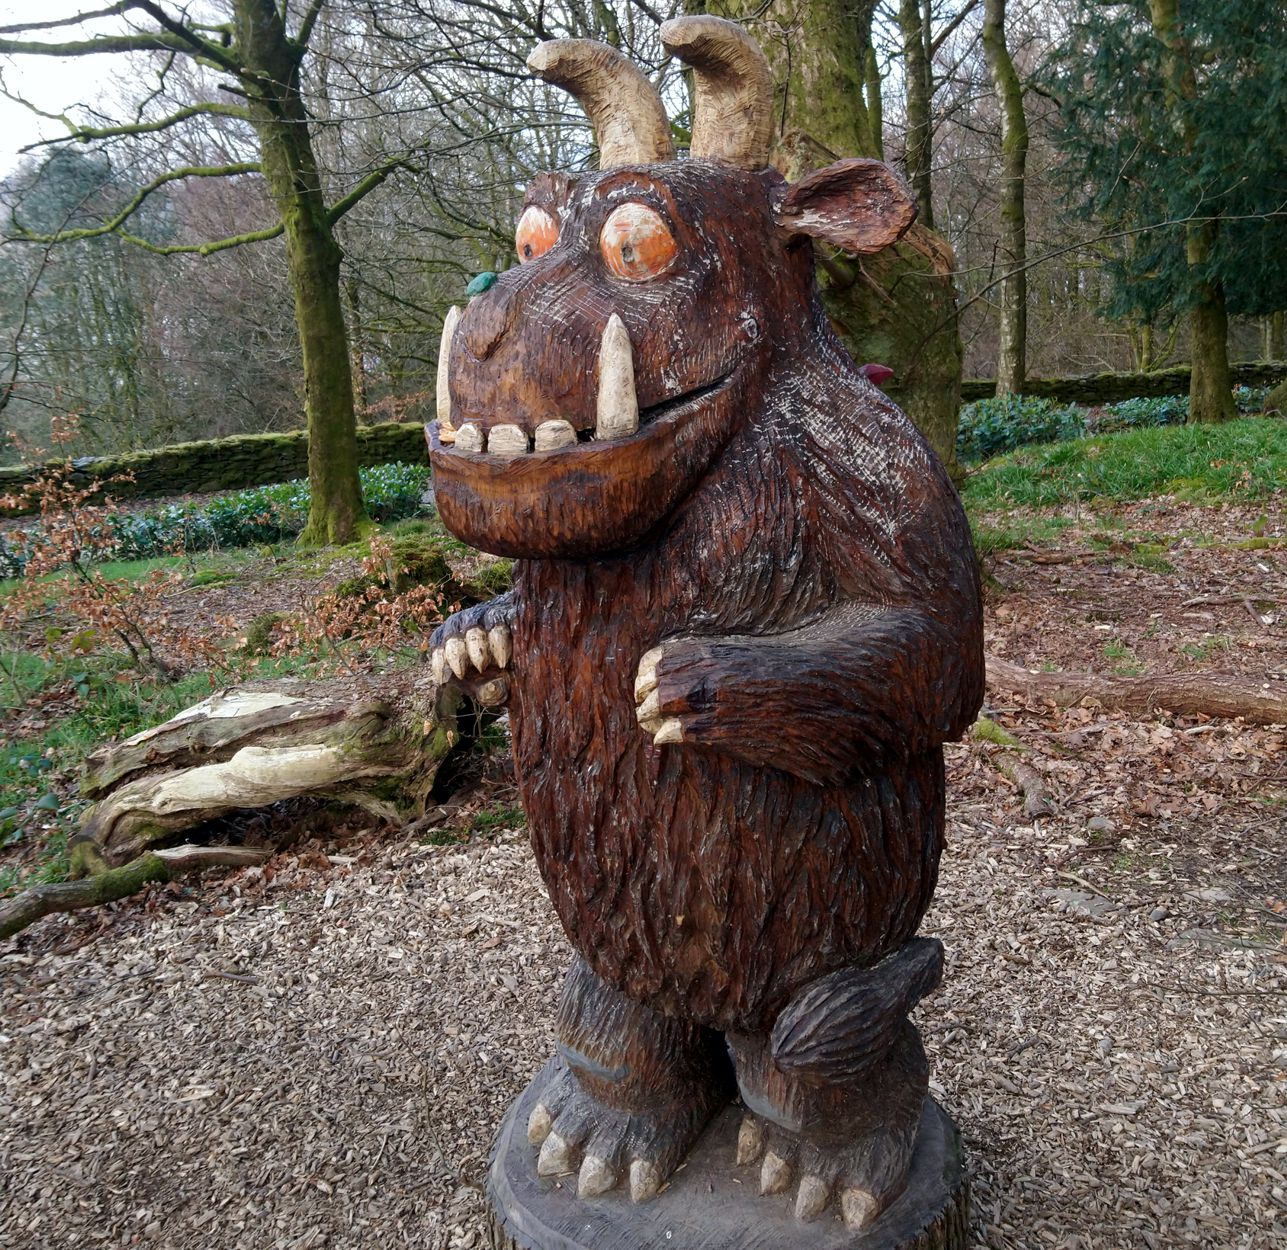 The Gruffalo Windermere